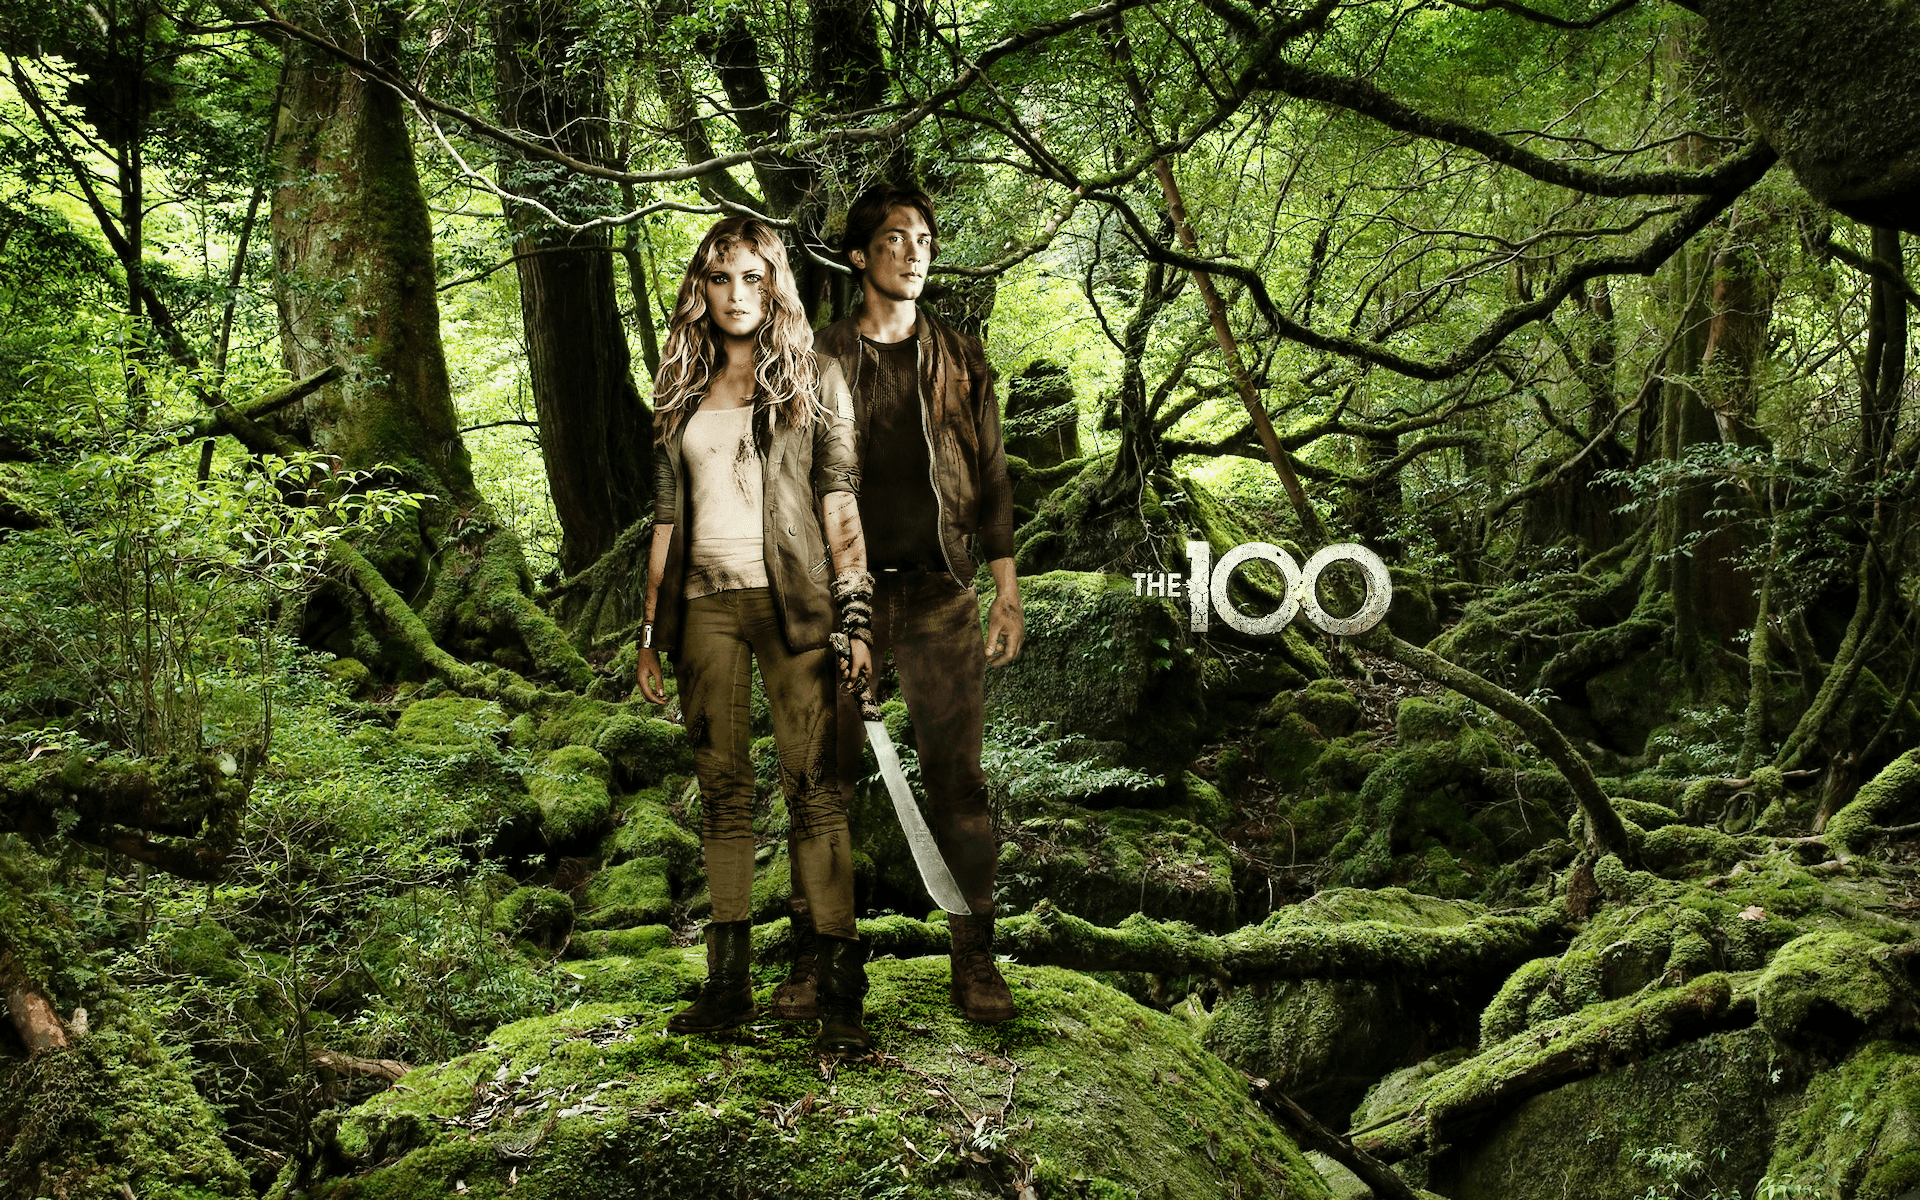 The 100 Background 7